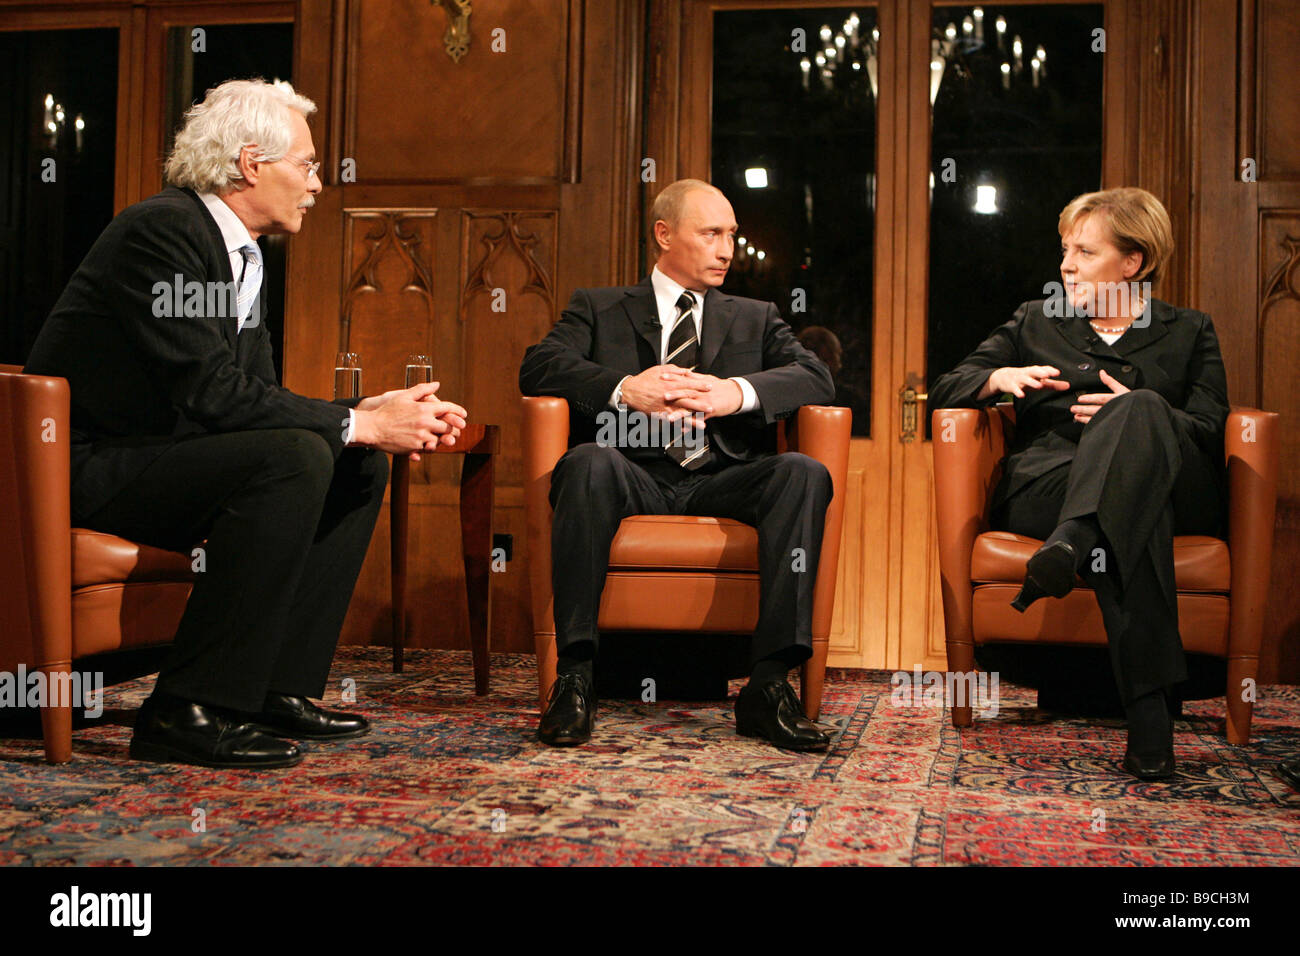 The German based ARD television interviews Vladimir Putin President of Russia center and Angela Merkel Federal Chancellor - Stock Image